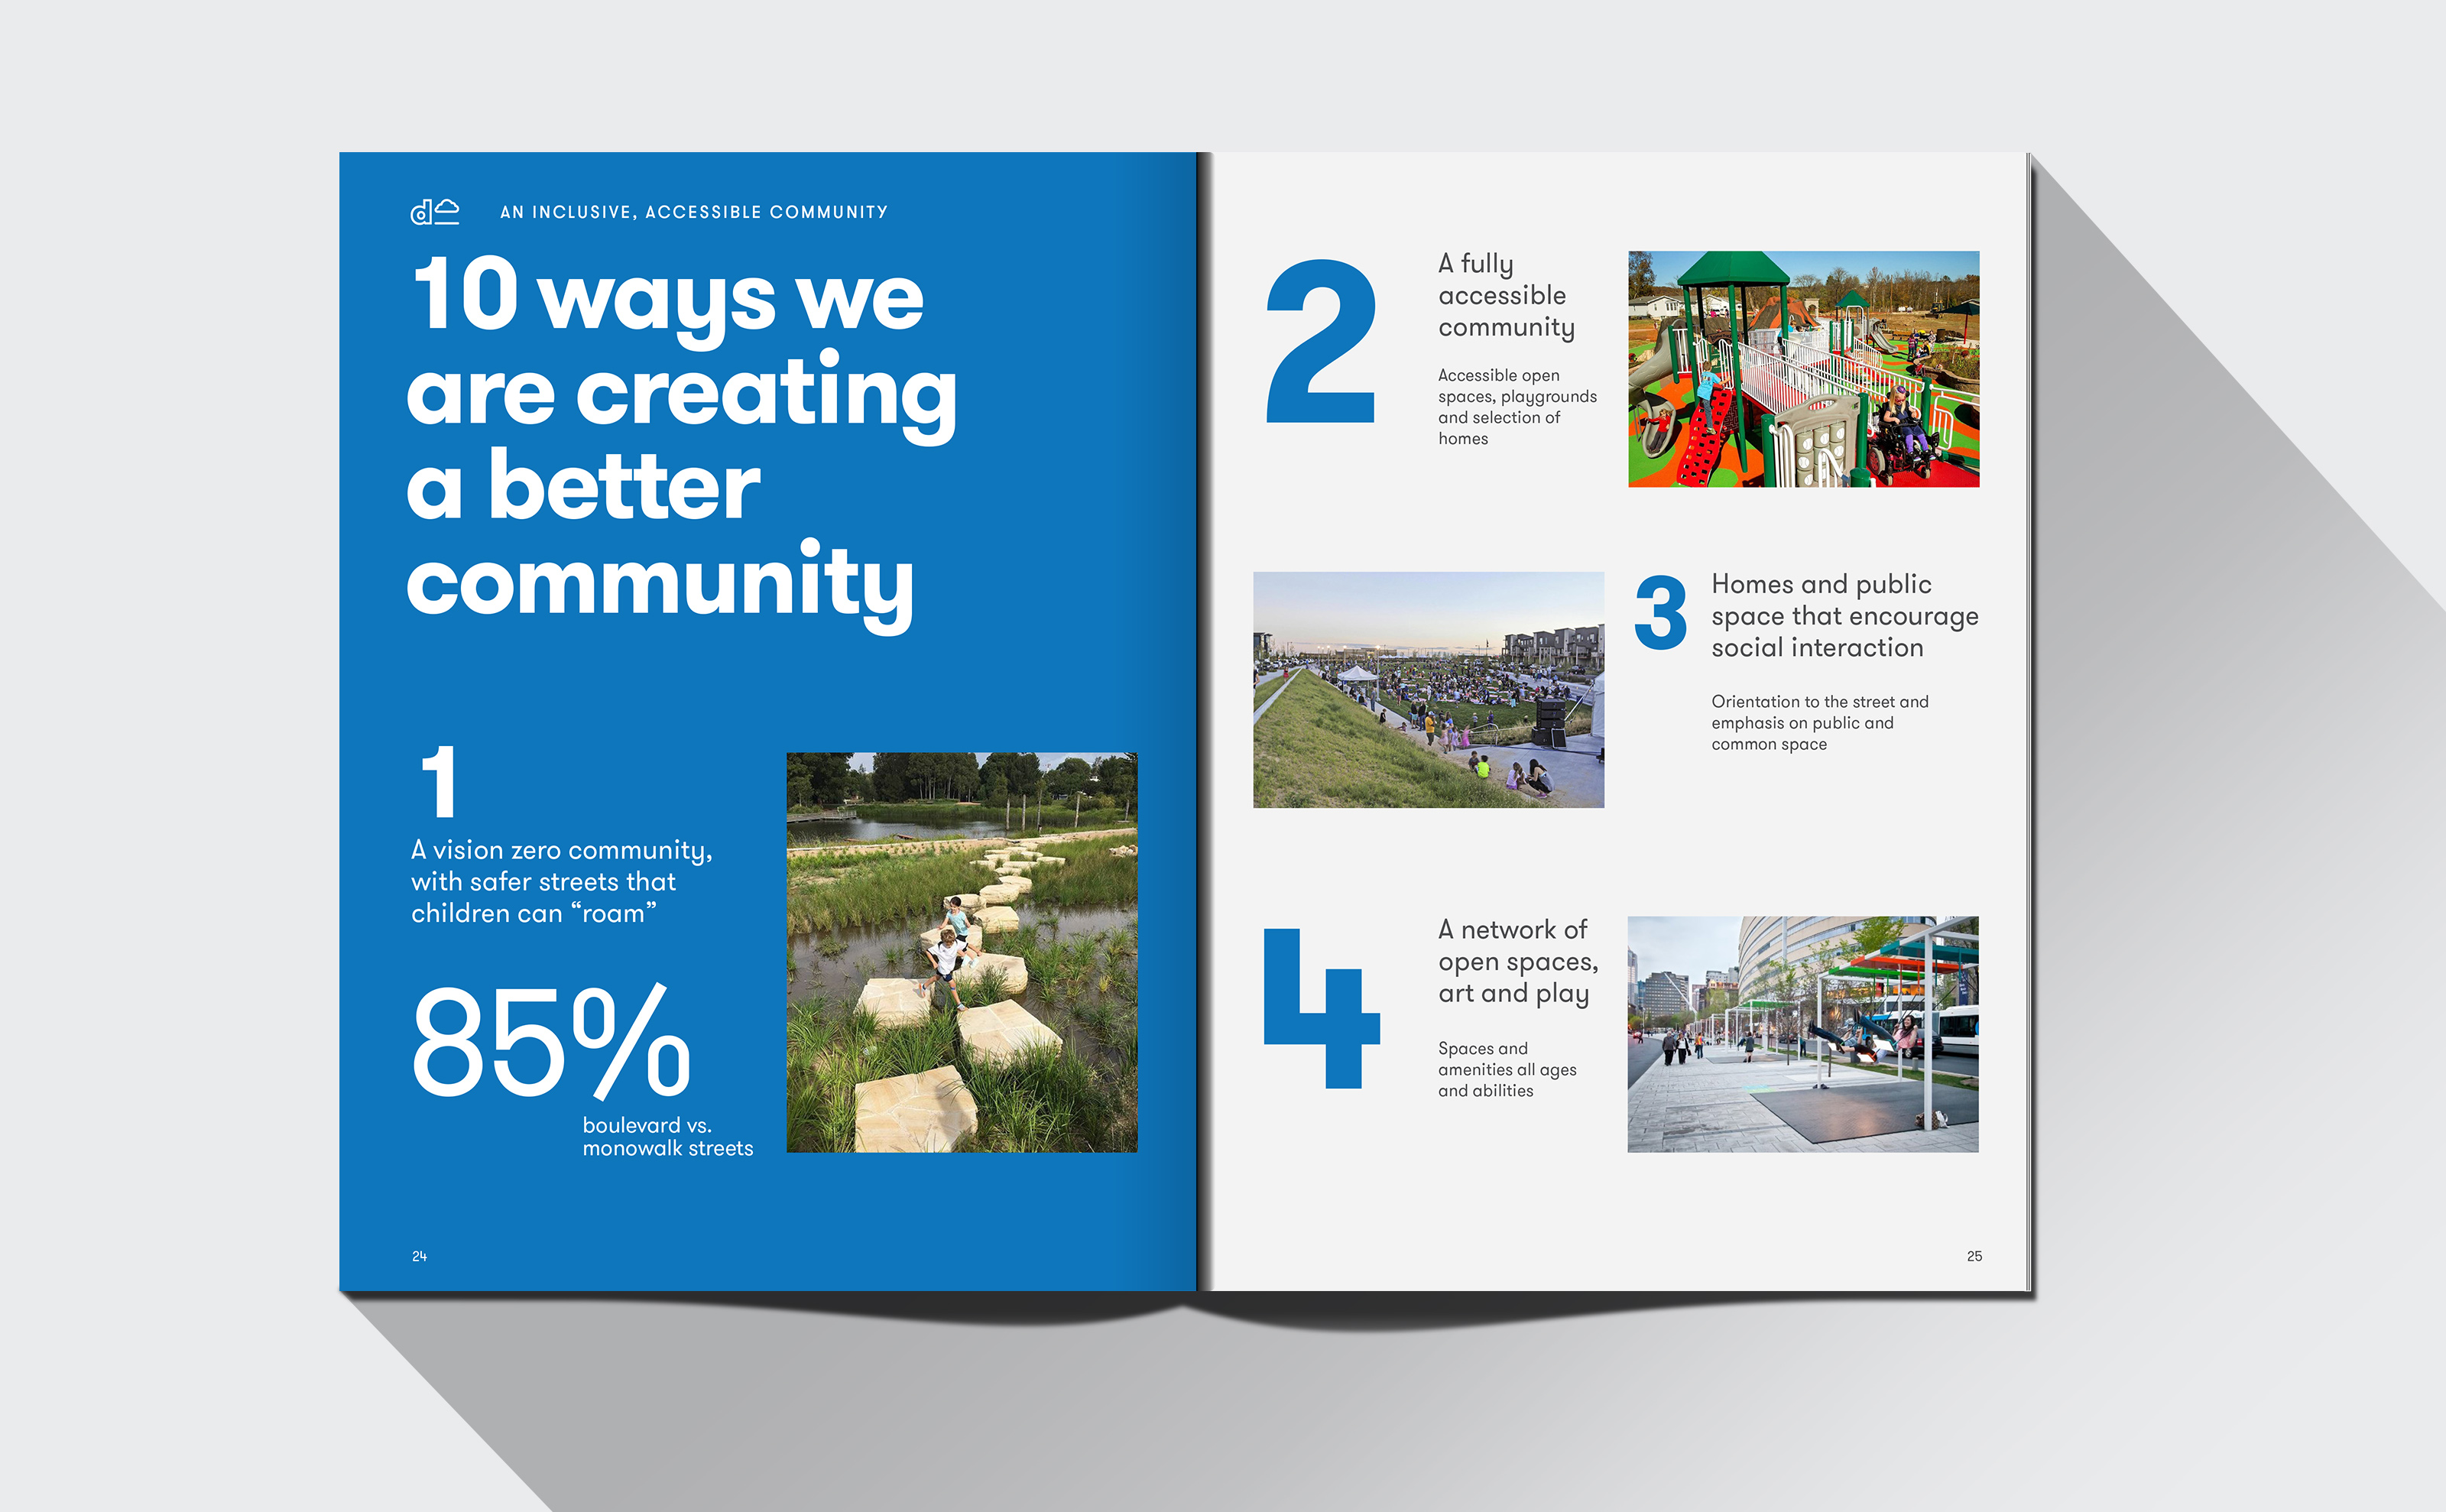 10 ways we are creating a better community